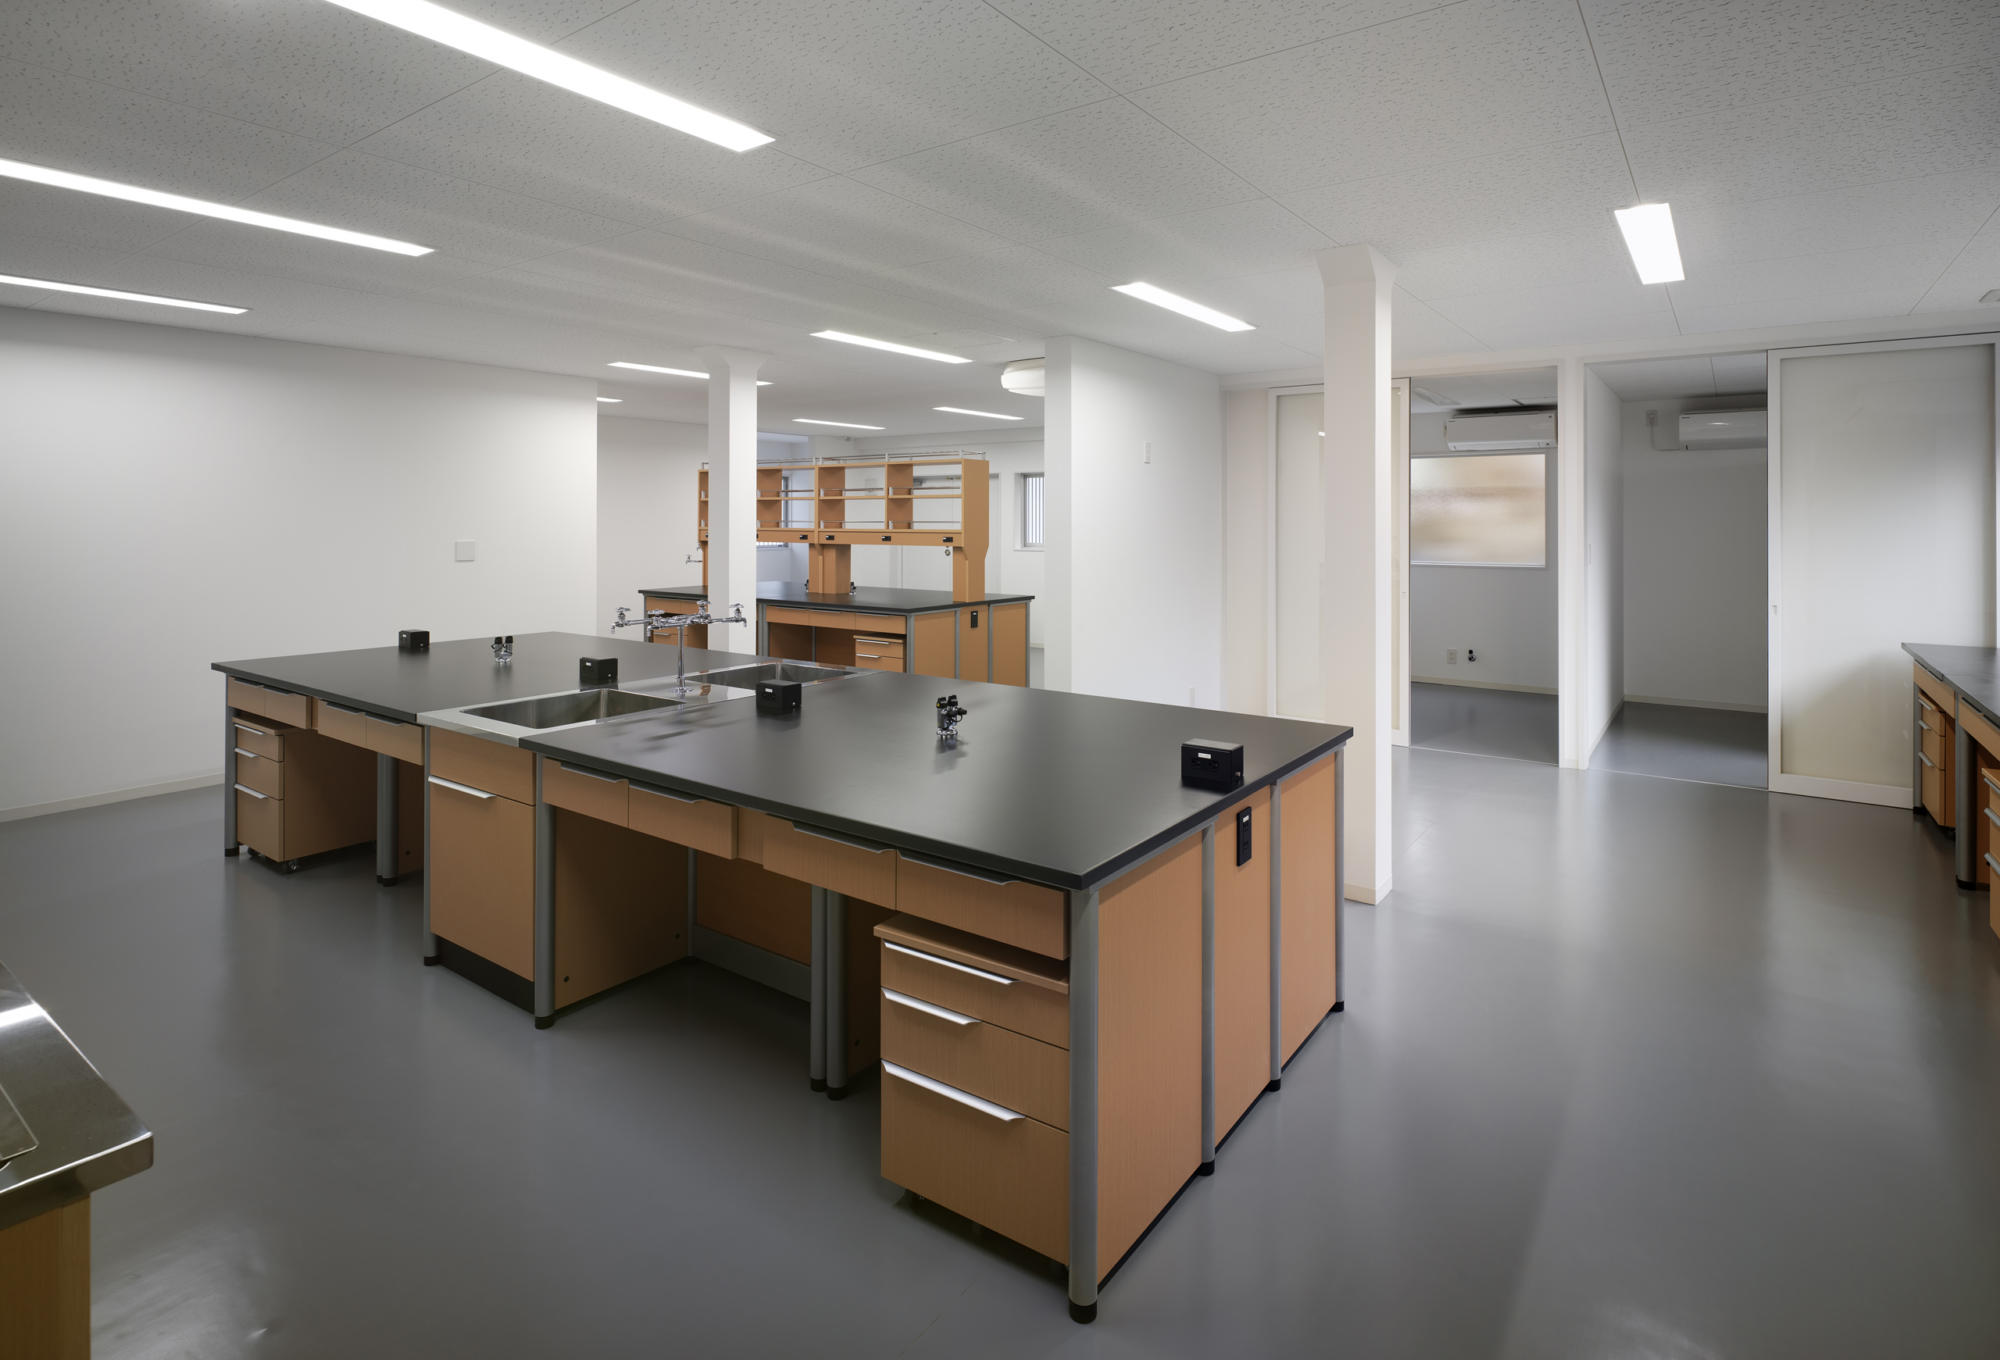 Nitto Pharma Landscaping project 2 - Laboratory | WORKS |